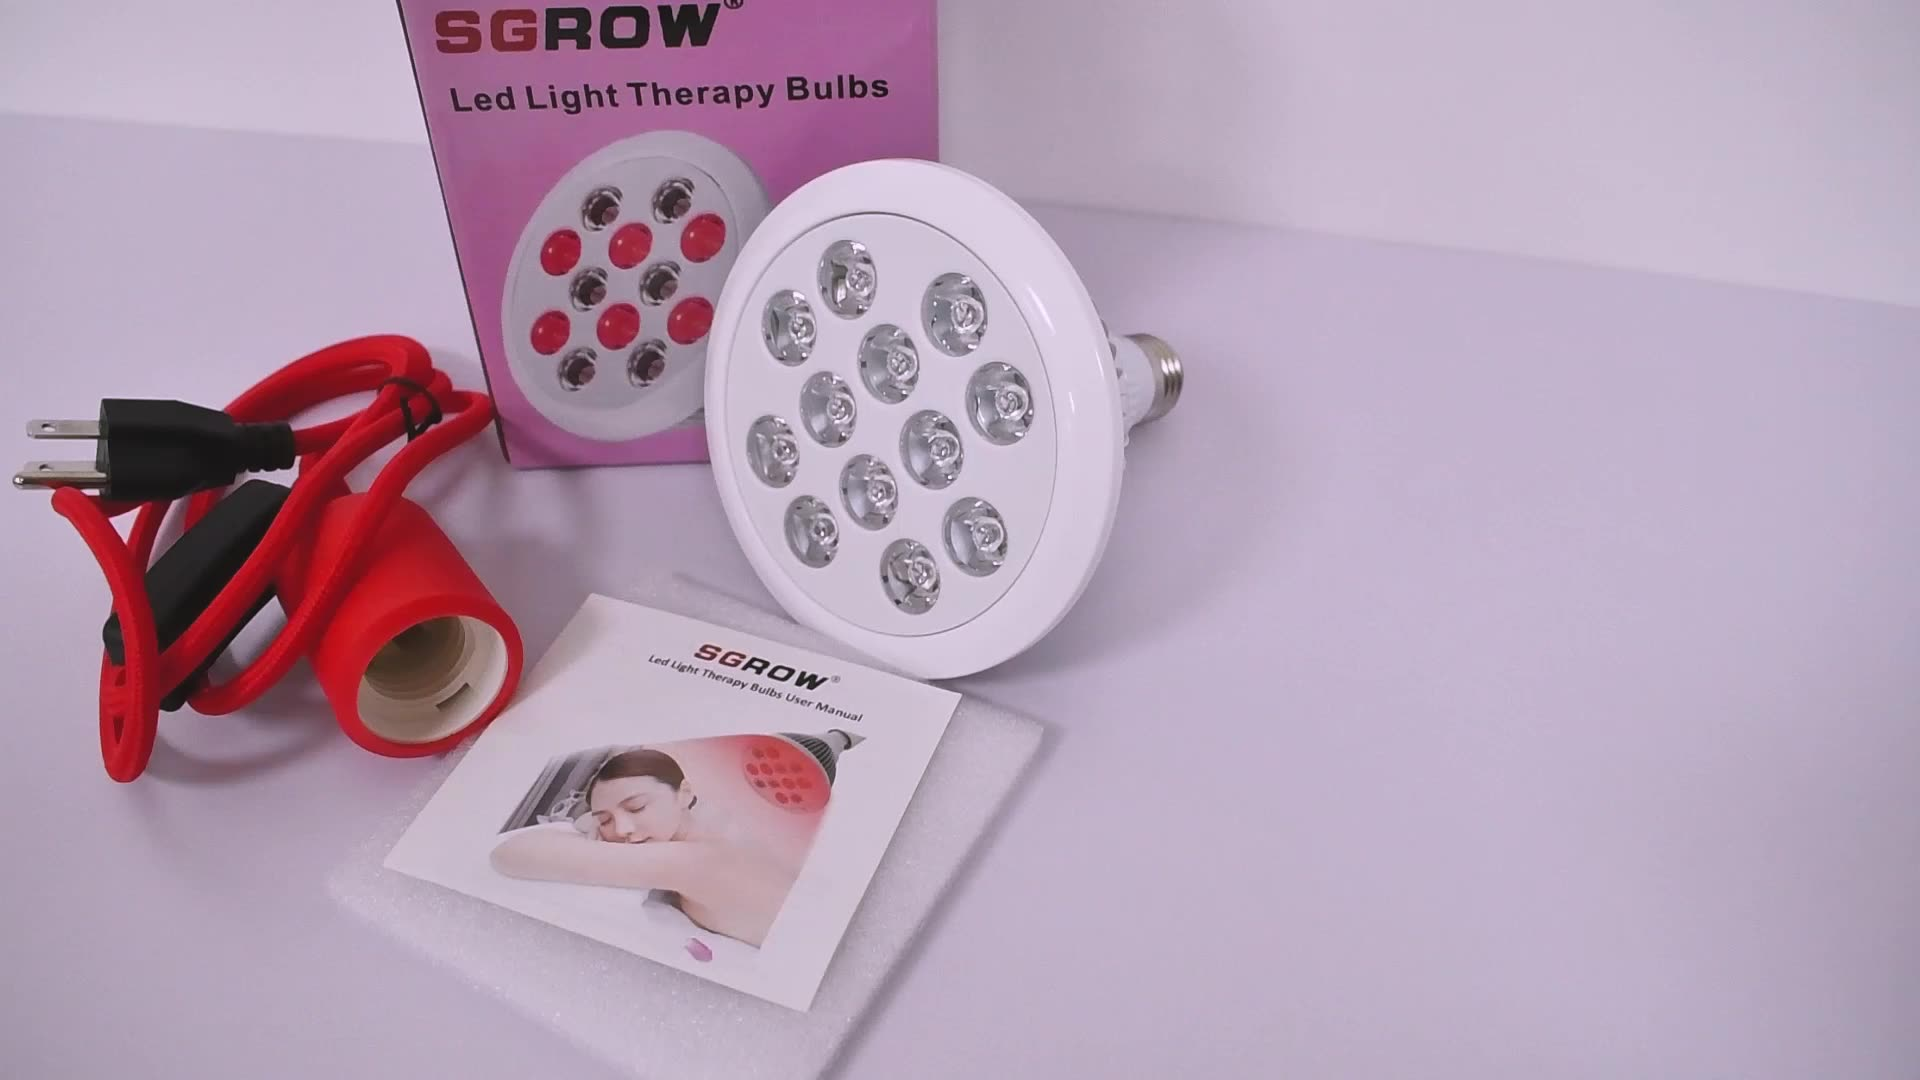 Portable Handheld E27 Socket Red Led Light Bulb Therapy Lamp,Full Body 24W Red Light Therapy